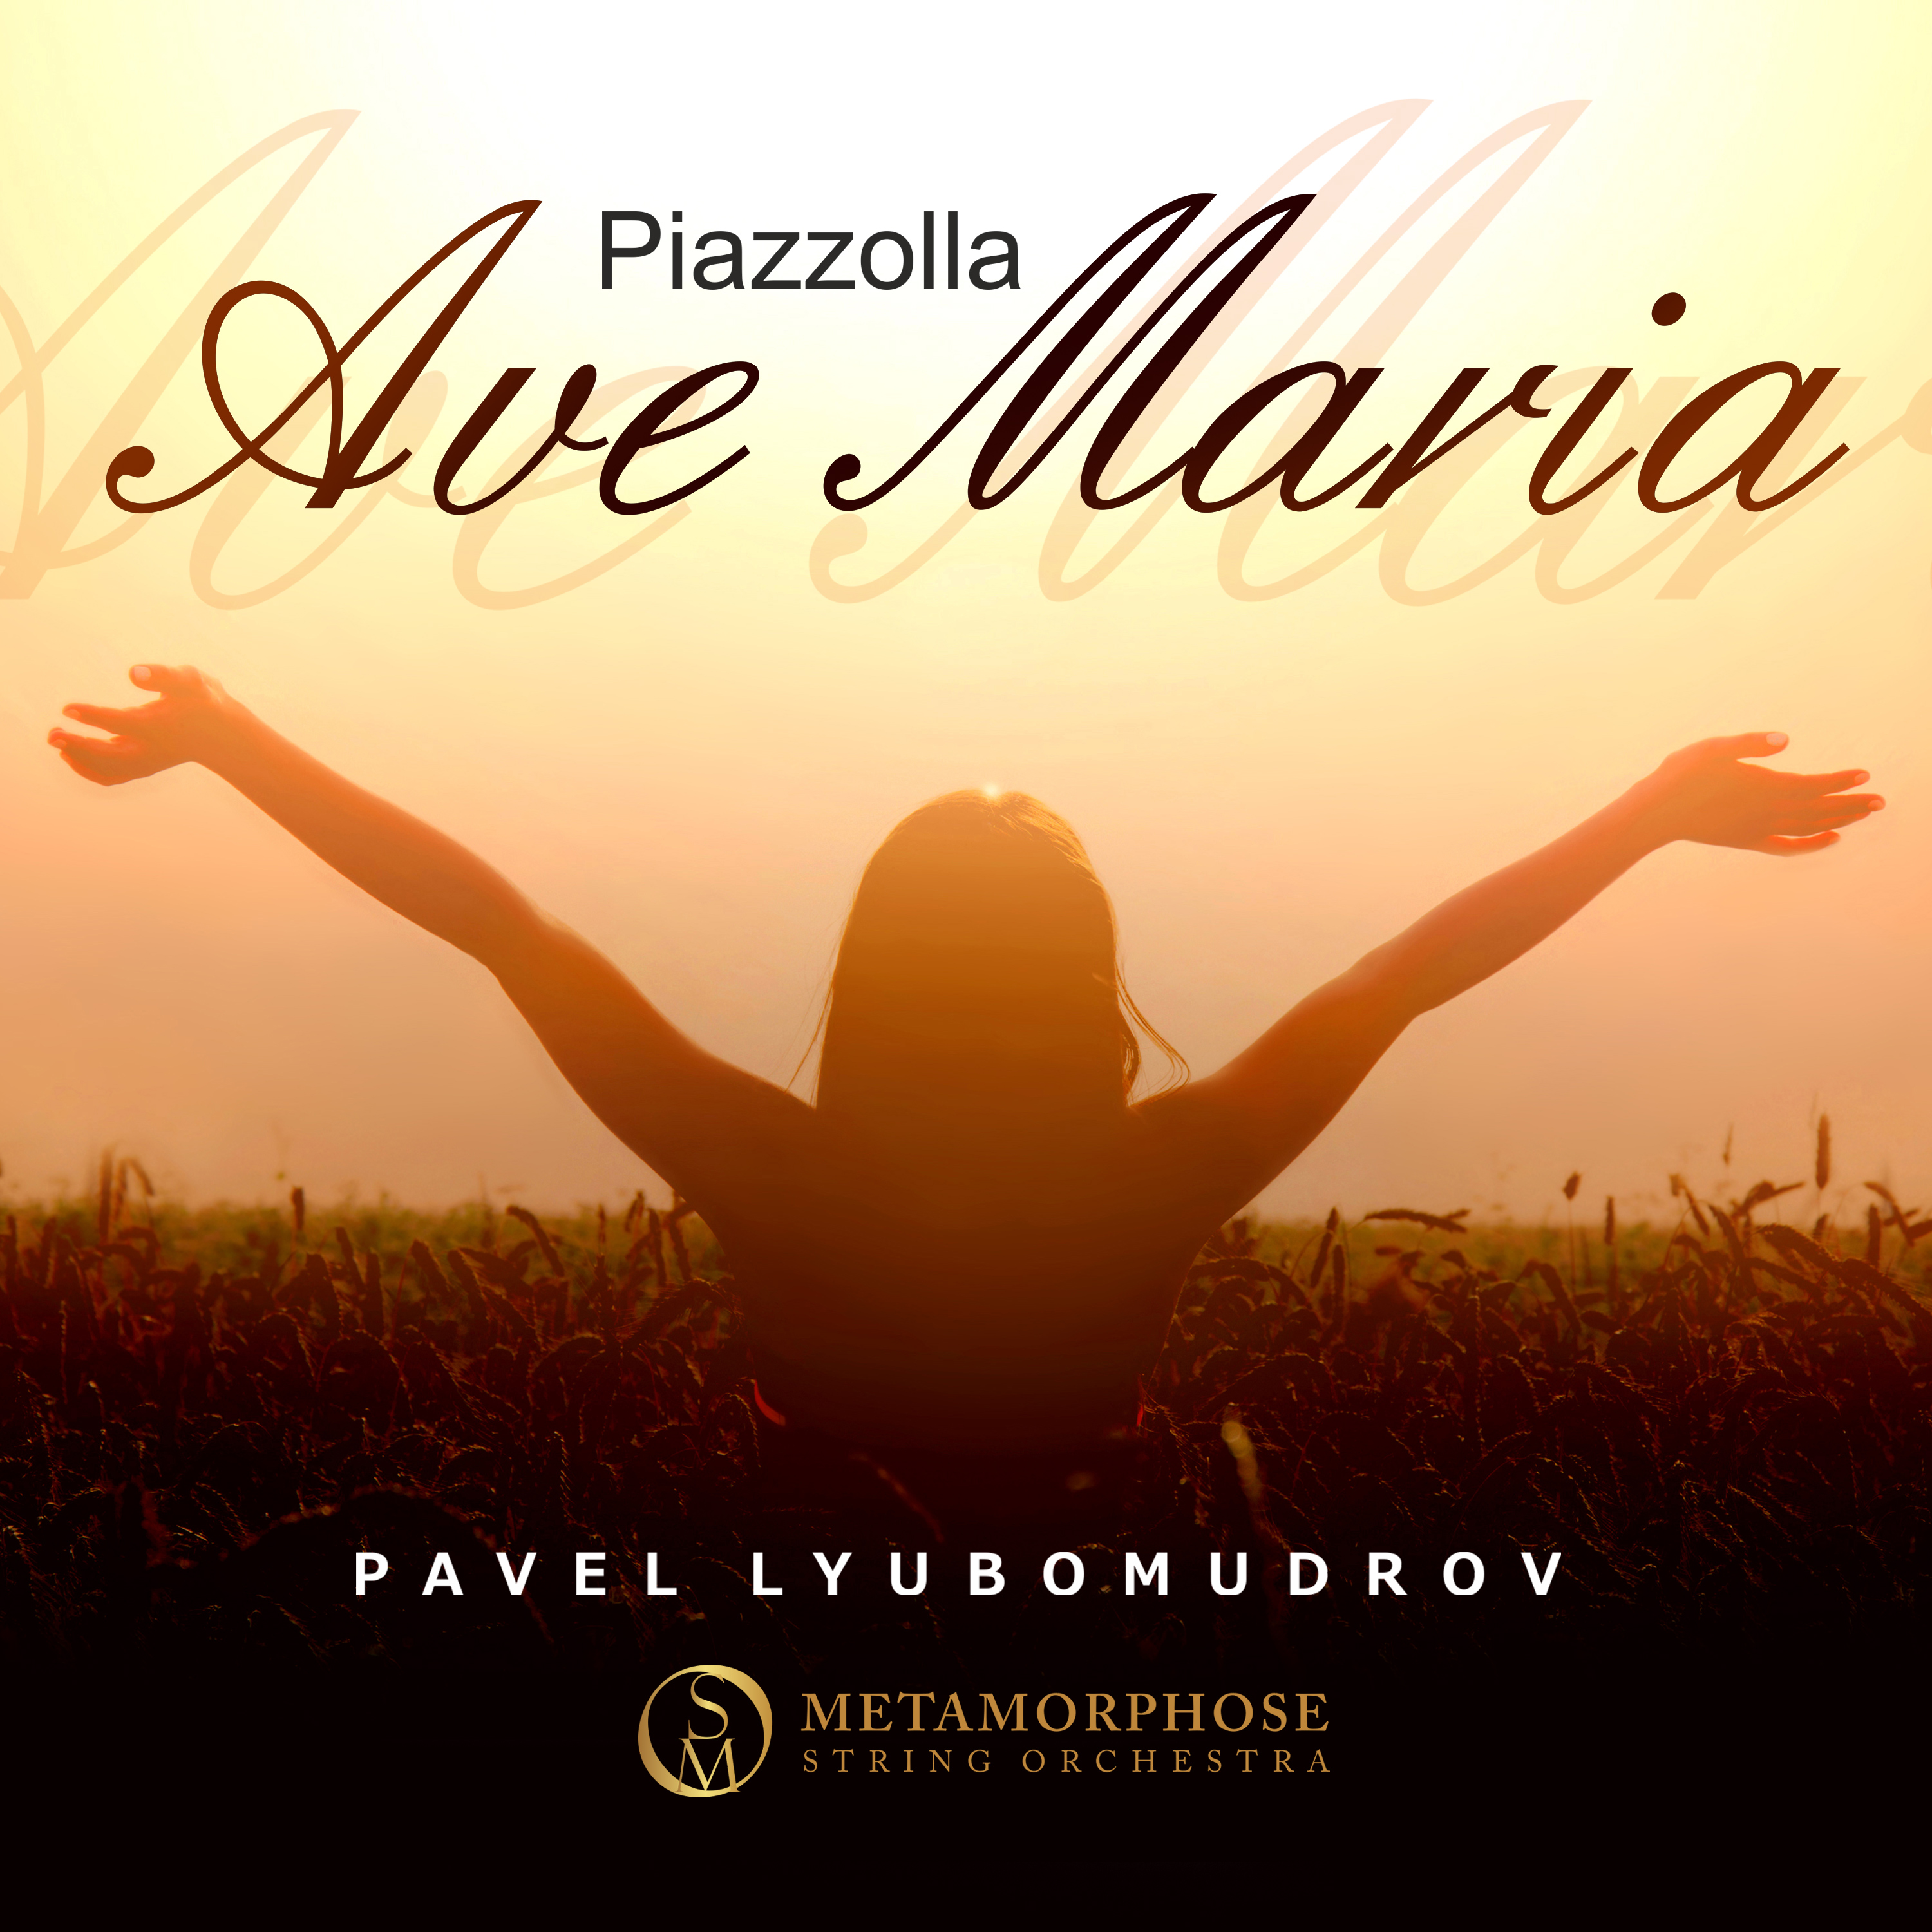 Piazzolla: Ave Maria